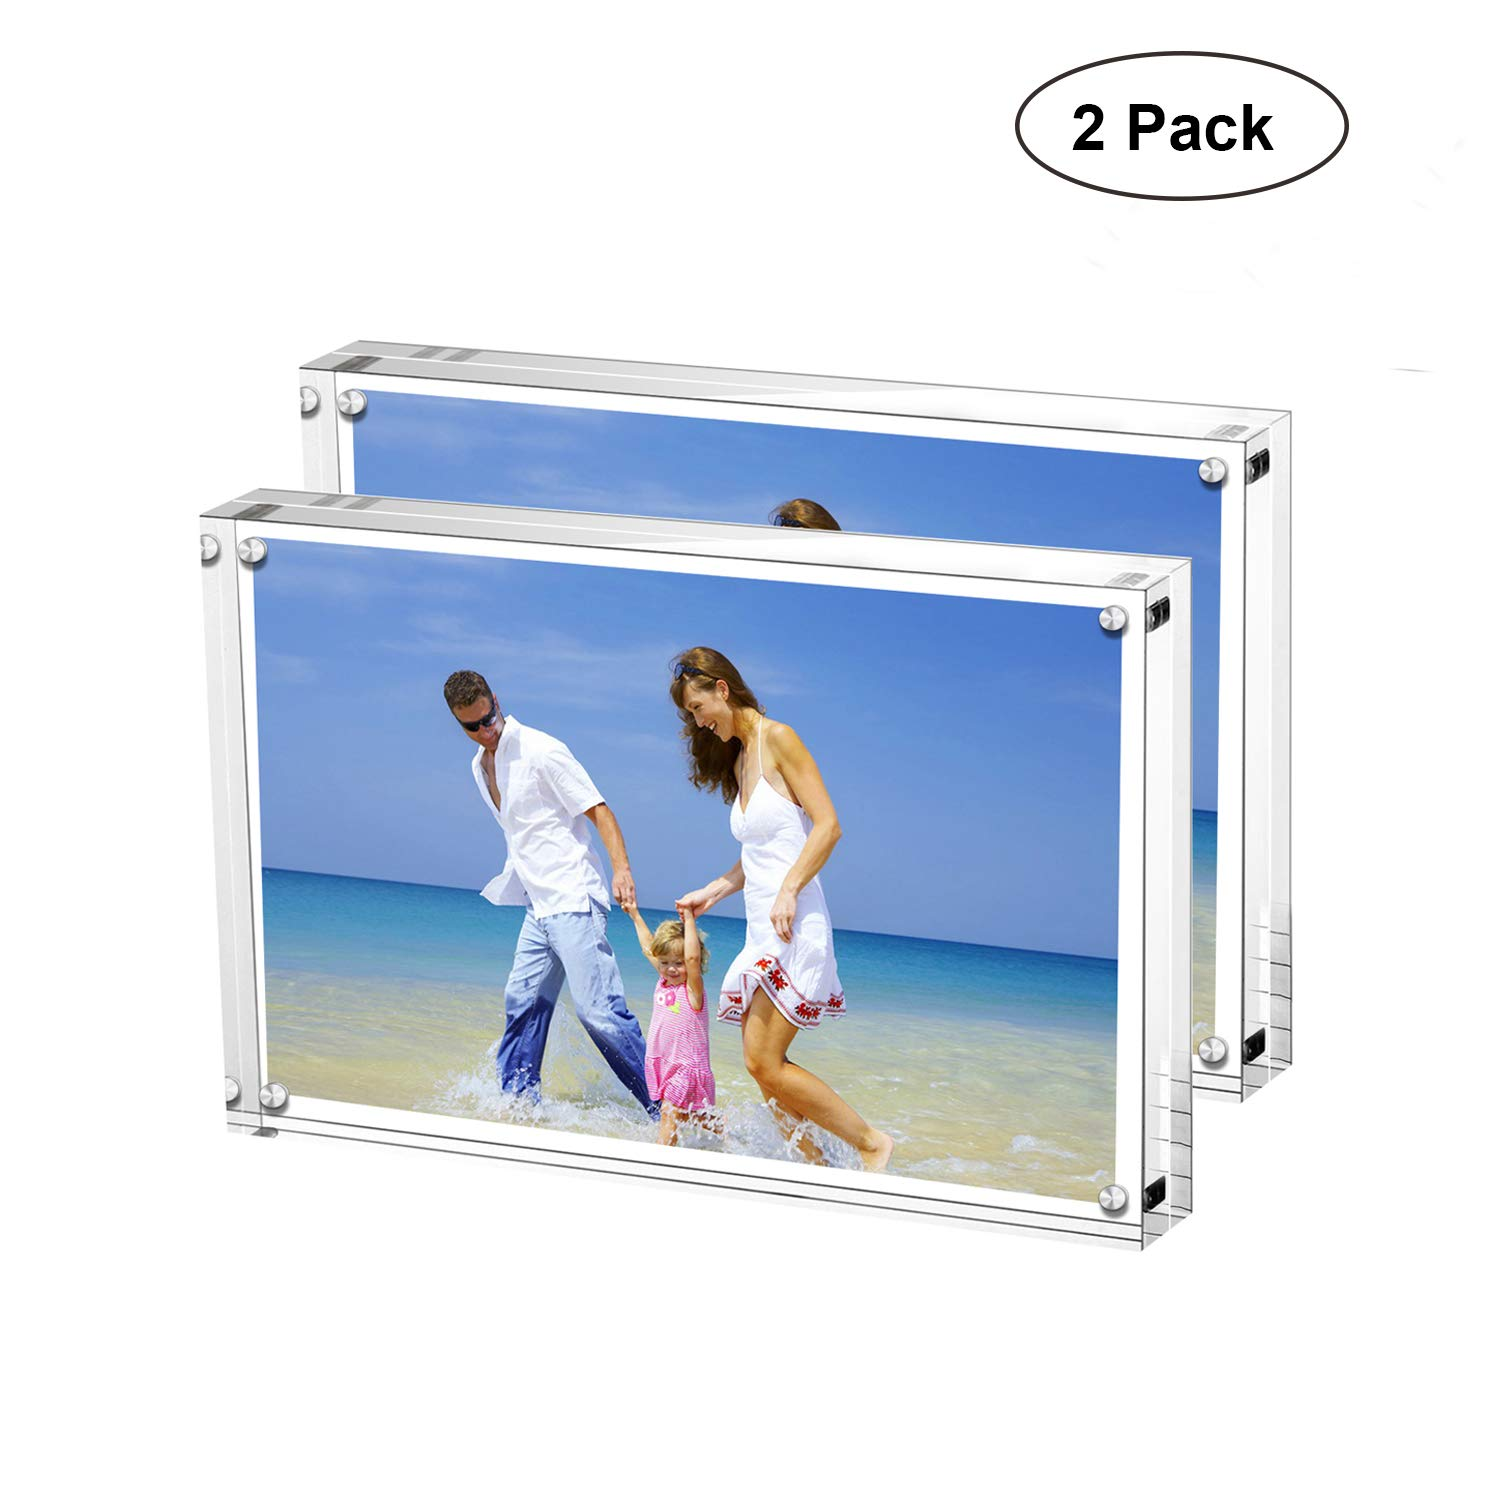 AMEITECH Acrylic Picture Frames, 4x6'' Clear Double Sided Block Set, Desktop Frameless Magnetic Photo Frame (2 Pack) by AMEITECH